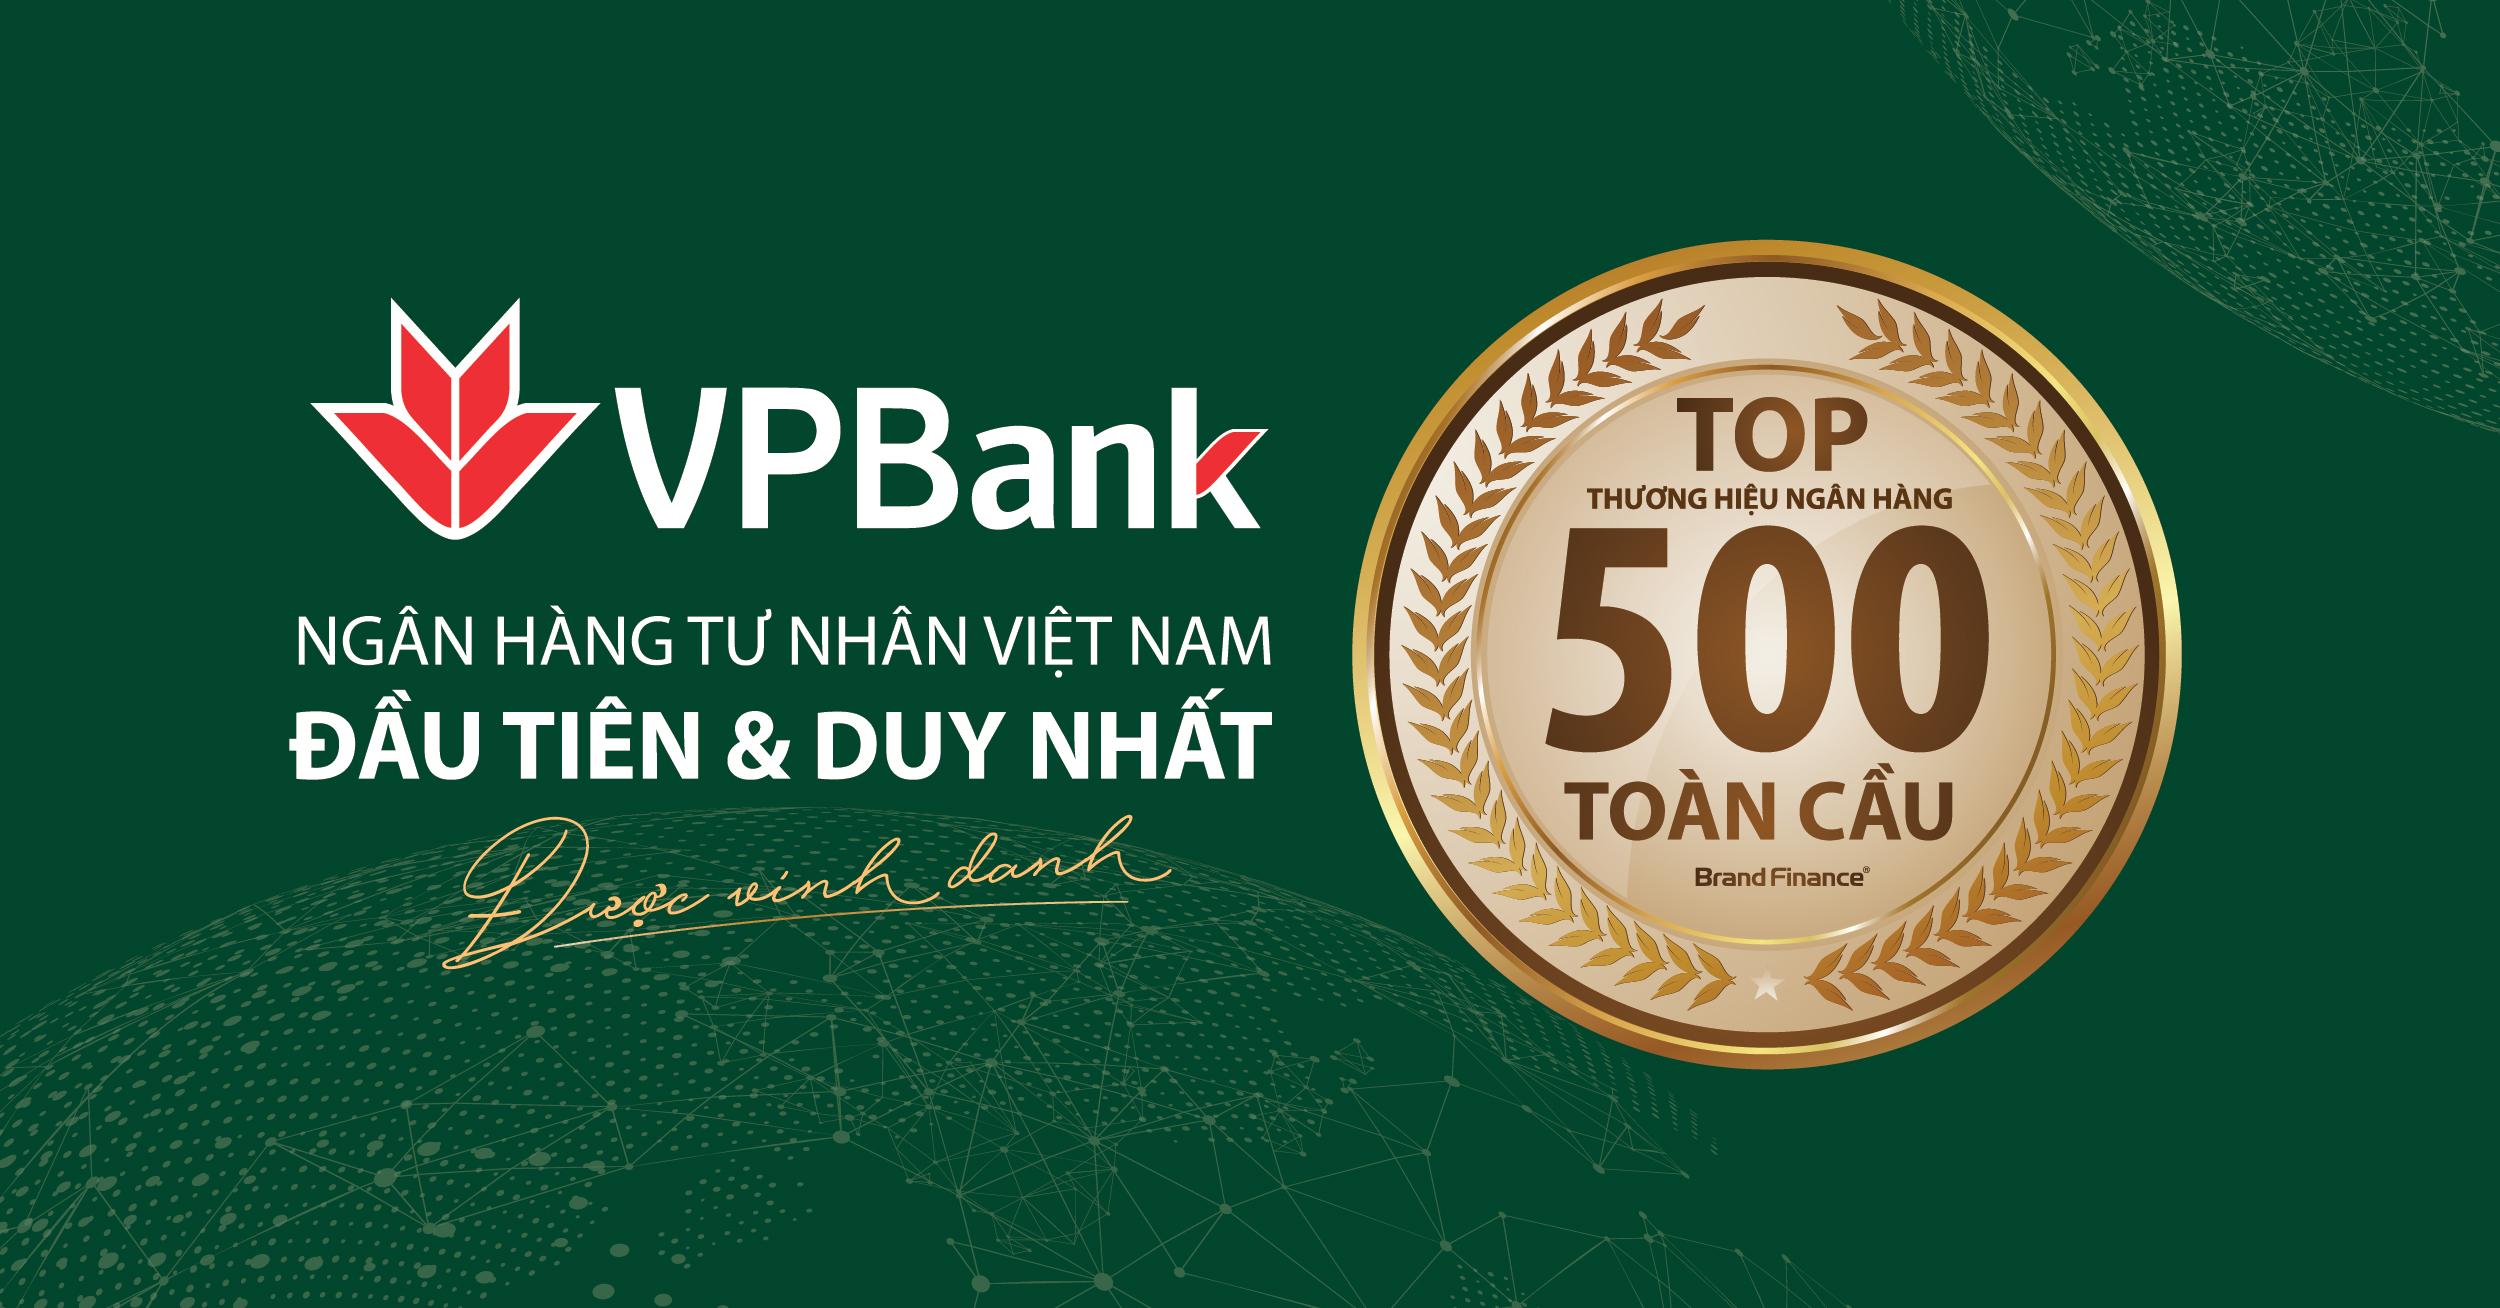 https://www.vpbank.com.vn/sites/default/files/anh%20top500.jpg